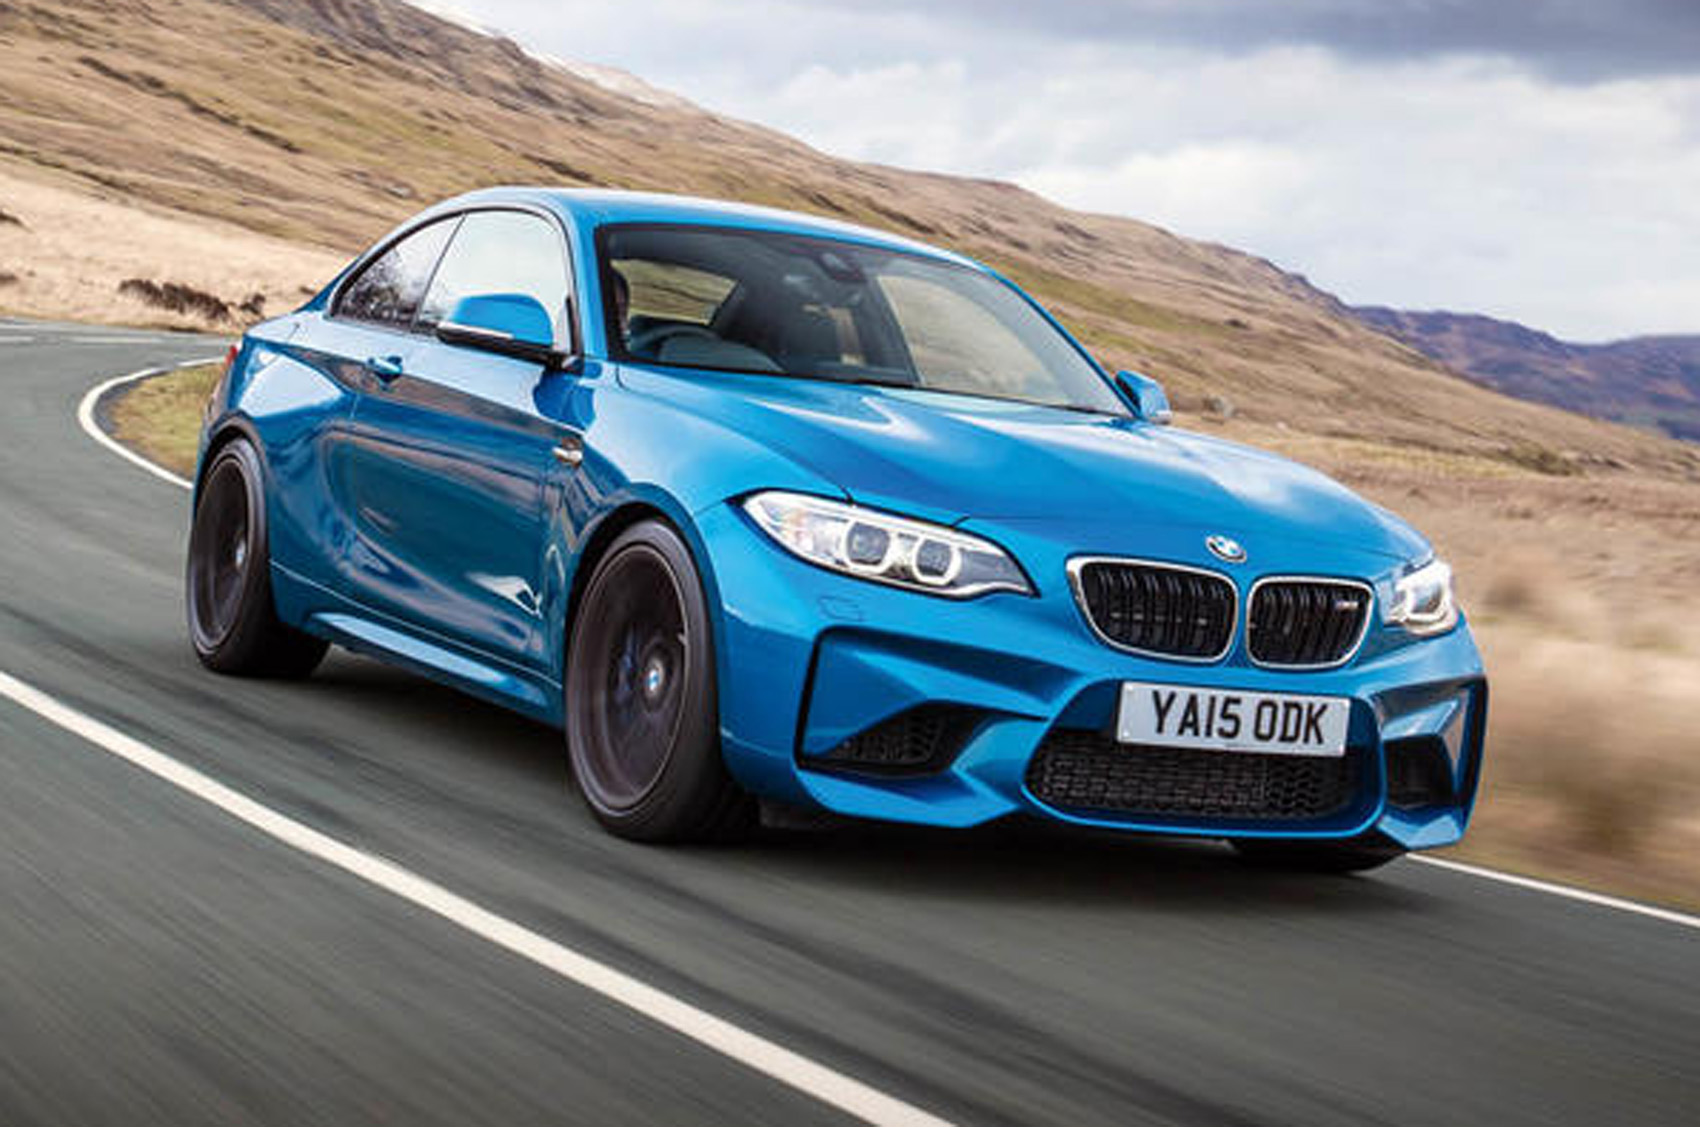 Bmw produces luxury automobiles and motorcycles